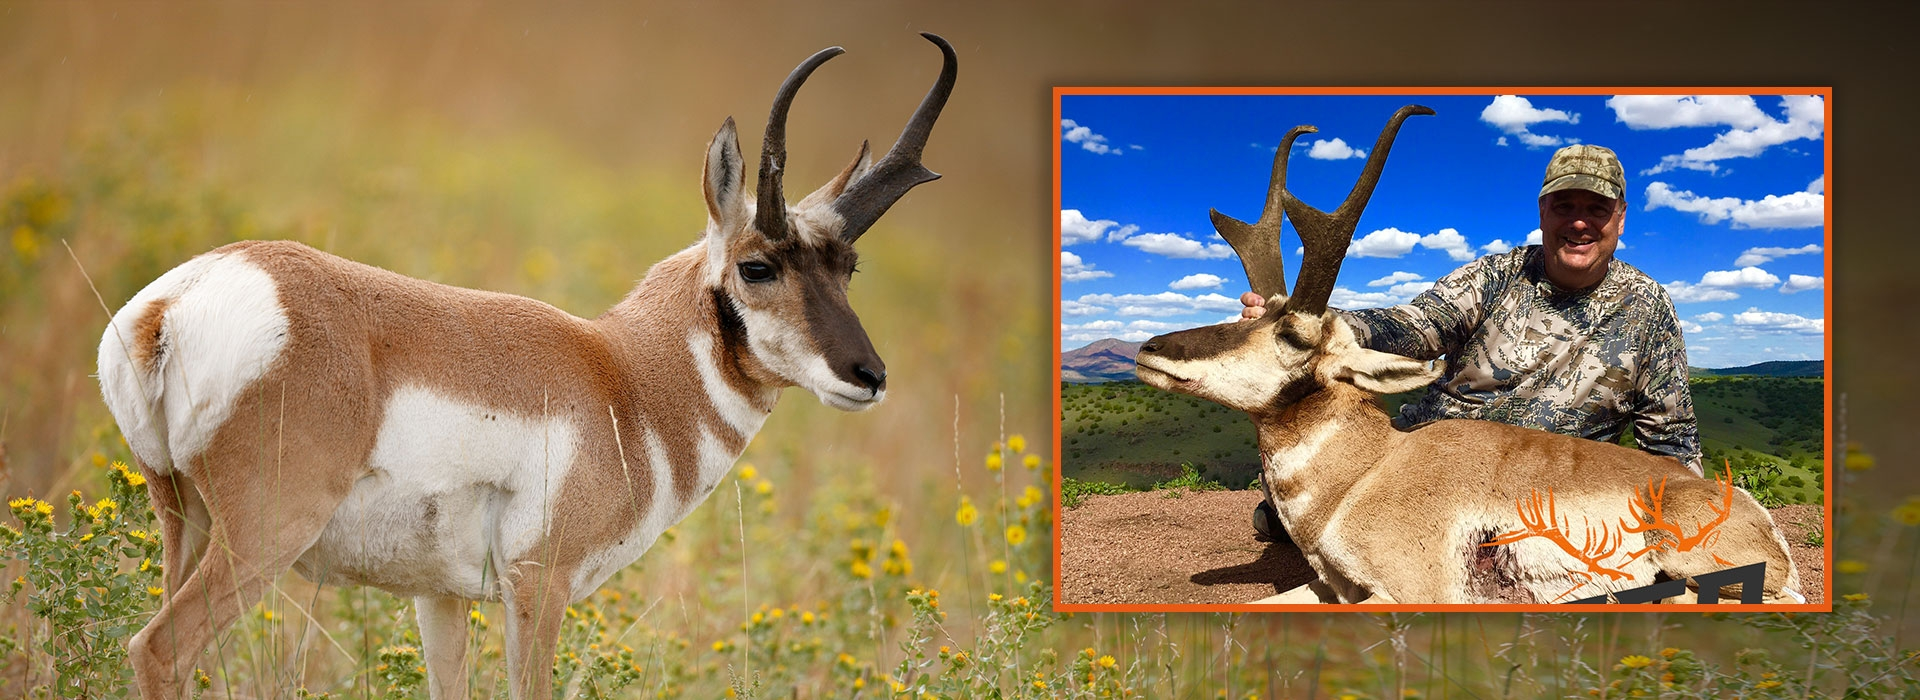 Trophy Antelope Hunts